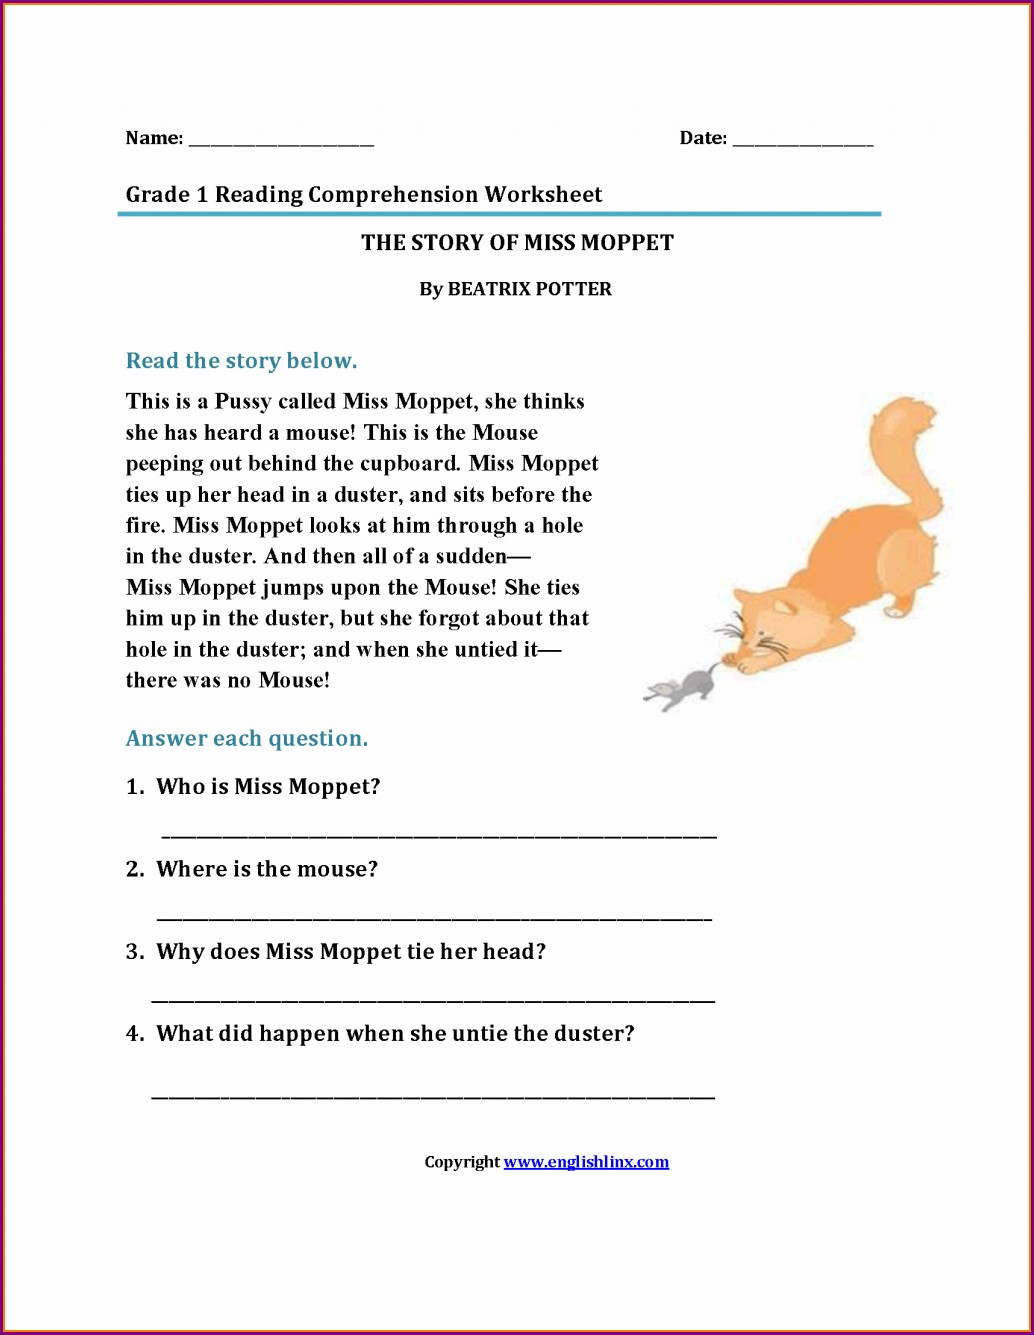 Comprehension Worksheets For Grade 1 With Questions And Answers